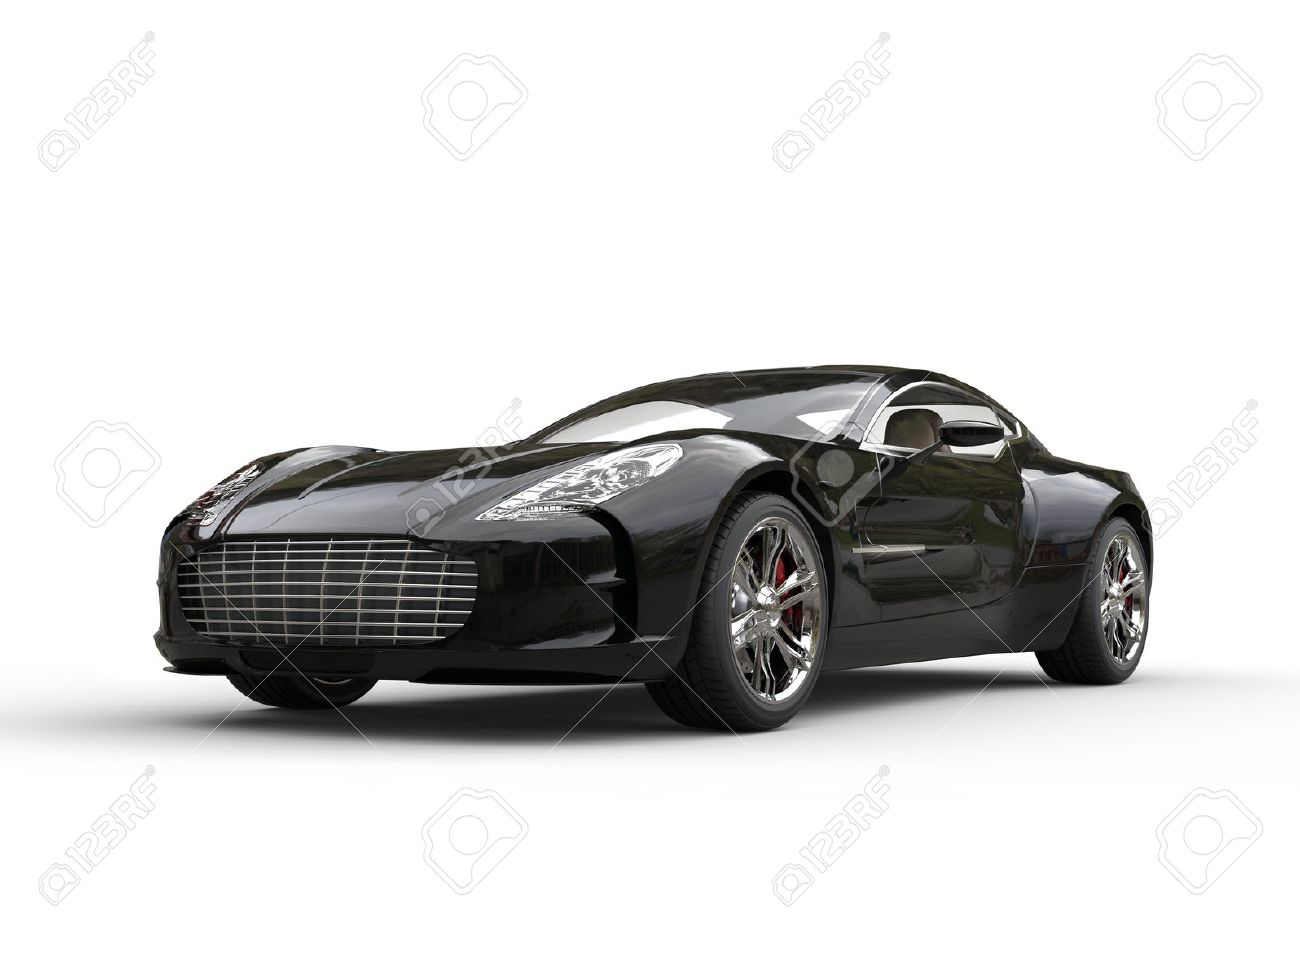 Black Luxury Sports Car On White Background. Image Shot In Ultra High  Resolution. Stock